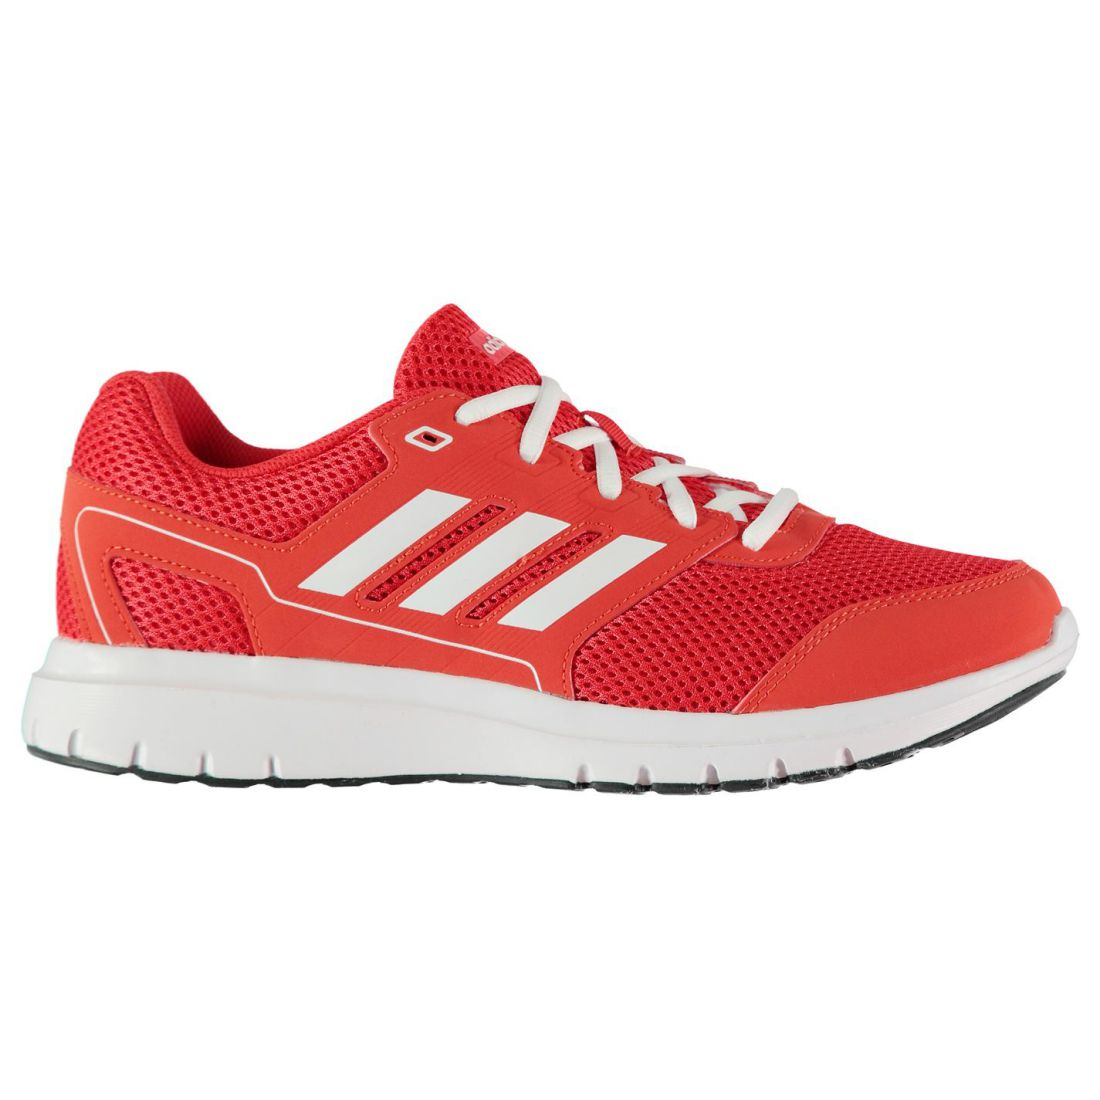 best website 8535a dd722 adidas Duramo Lite 2 Sneakers Mens Gents Runners Laces Fastened Ventilated  Mesh